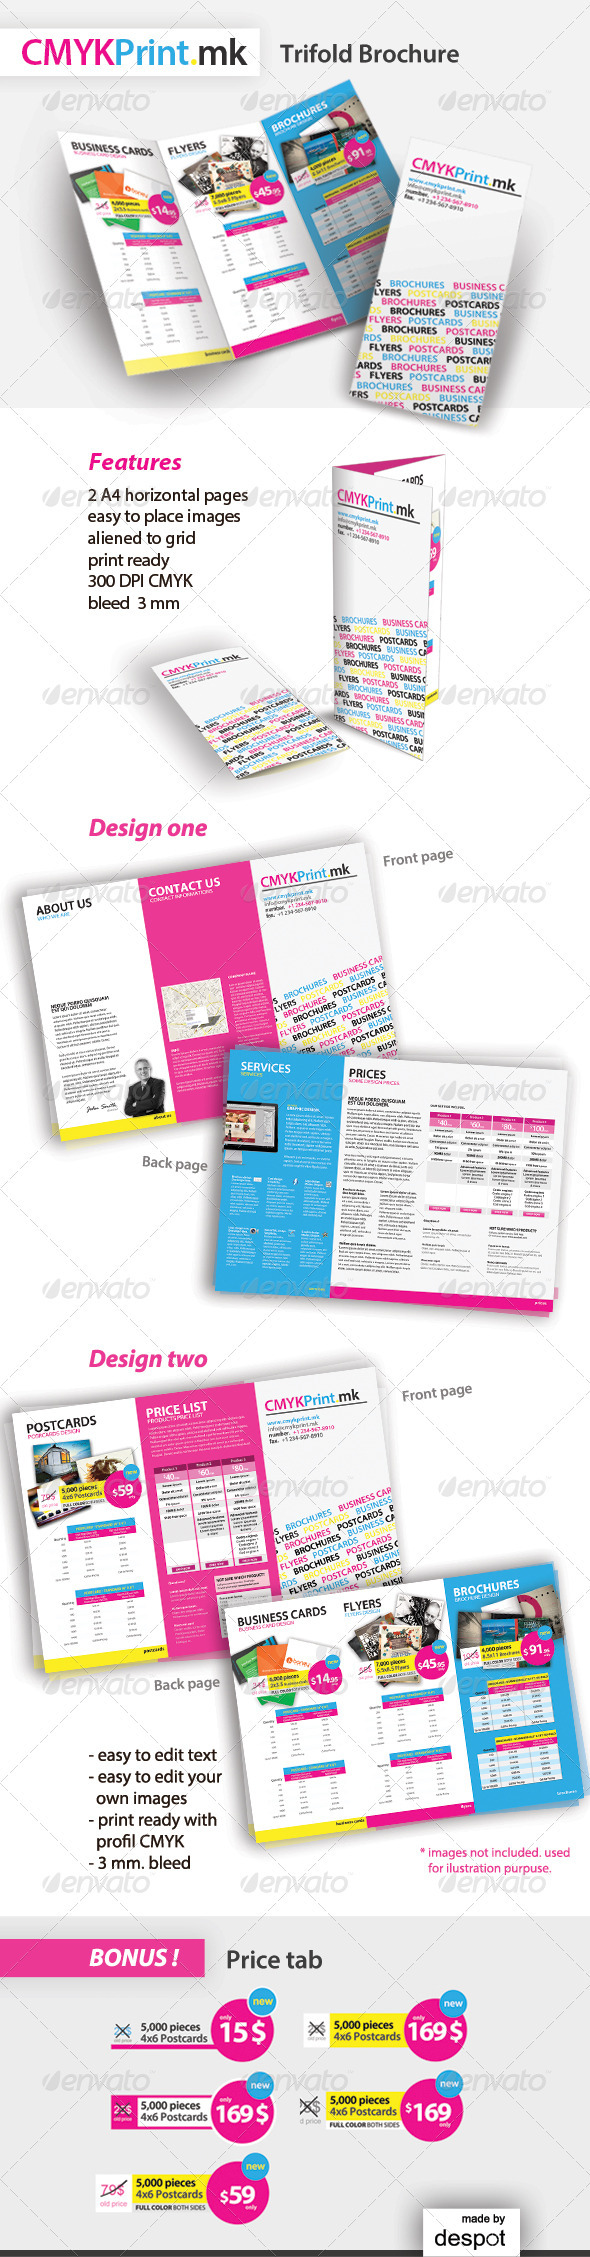 GraphicRiver CMYK Print Trifold Brochure 2782341